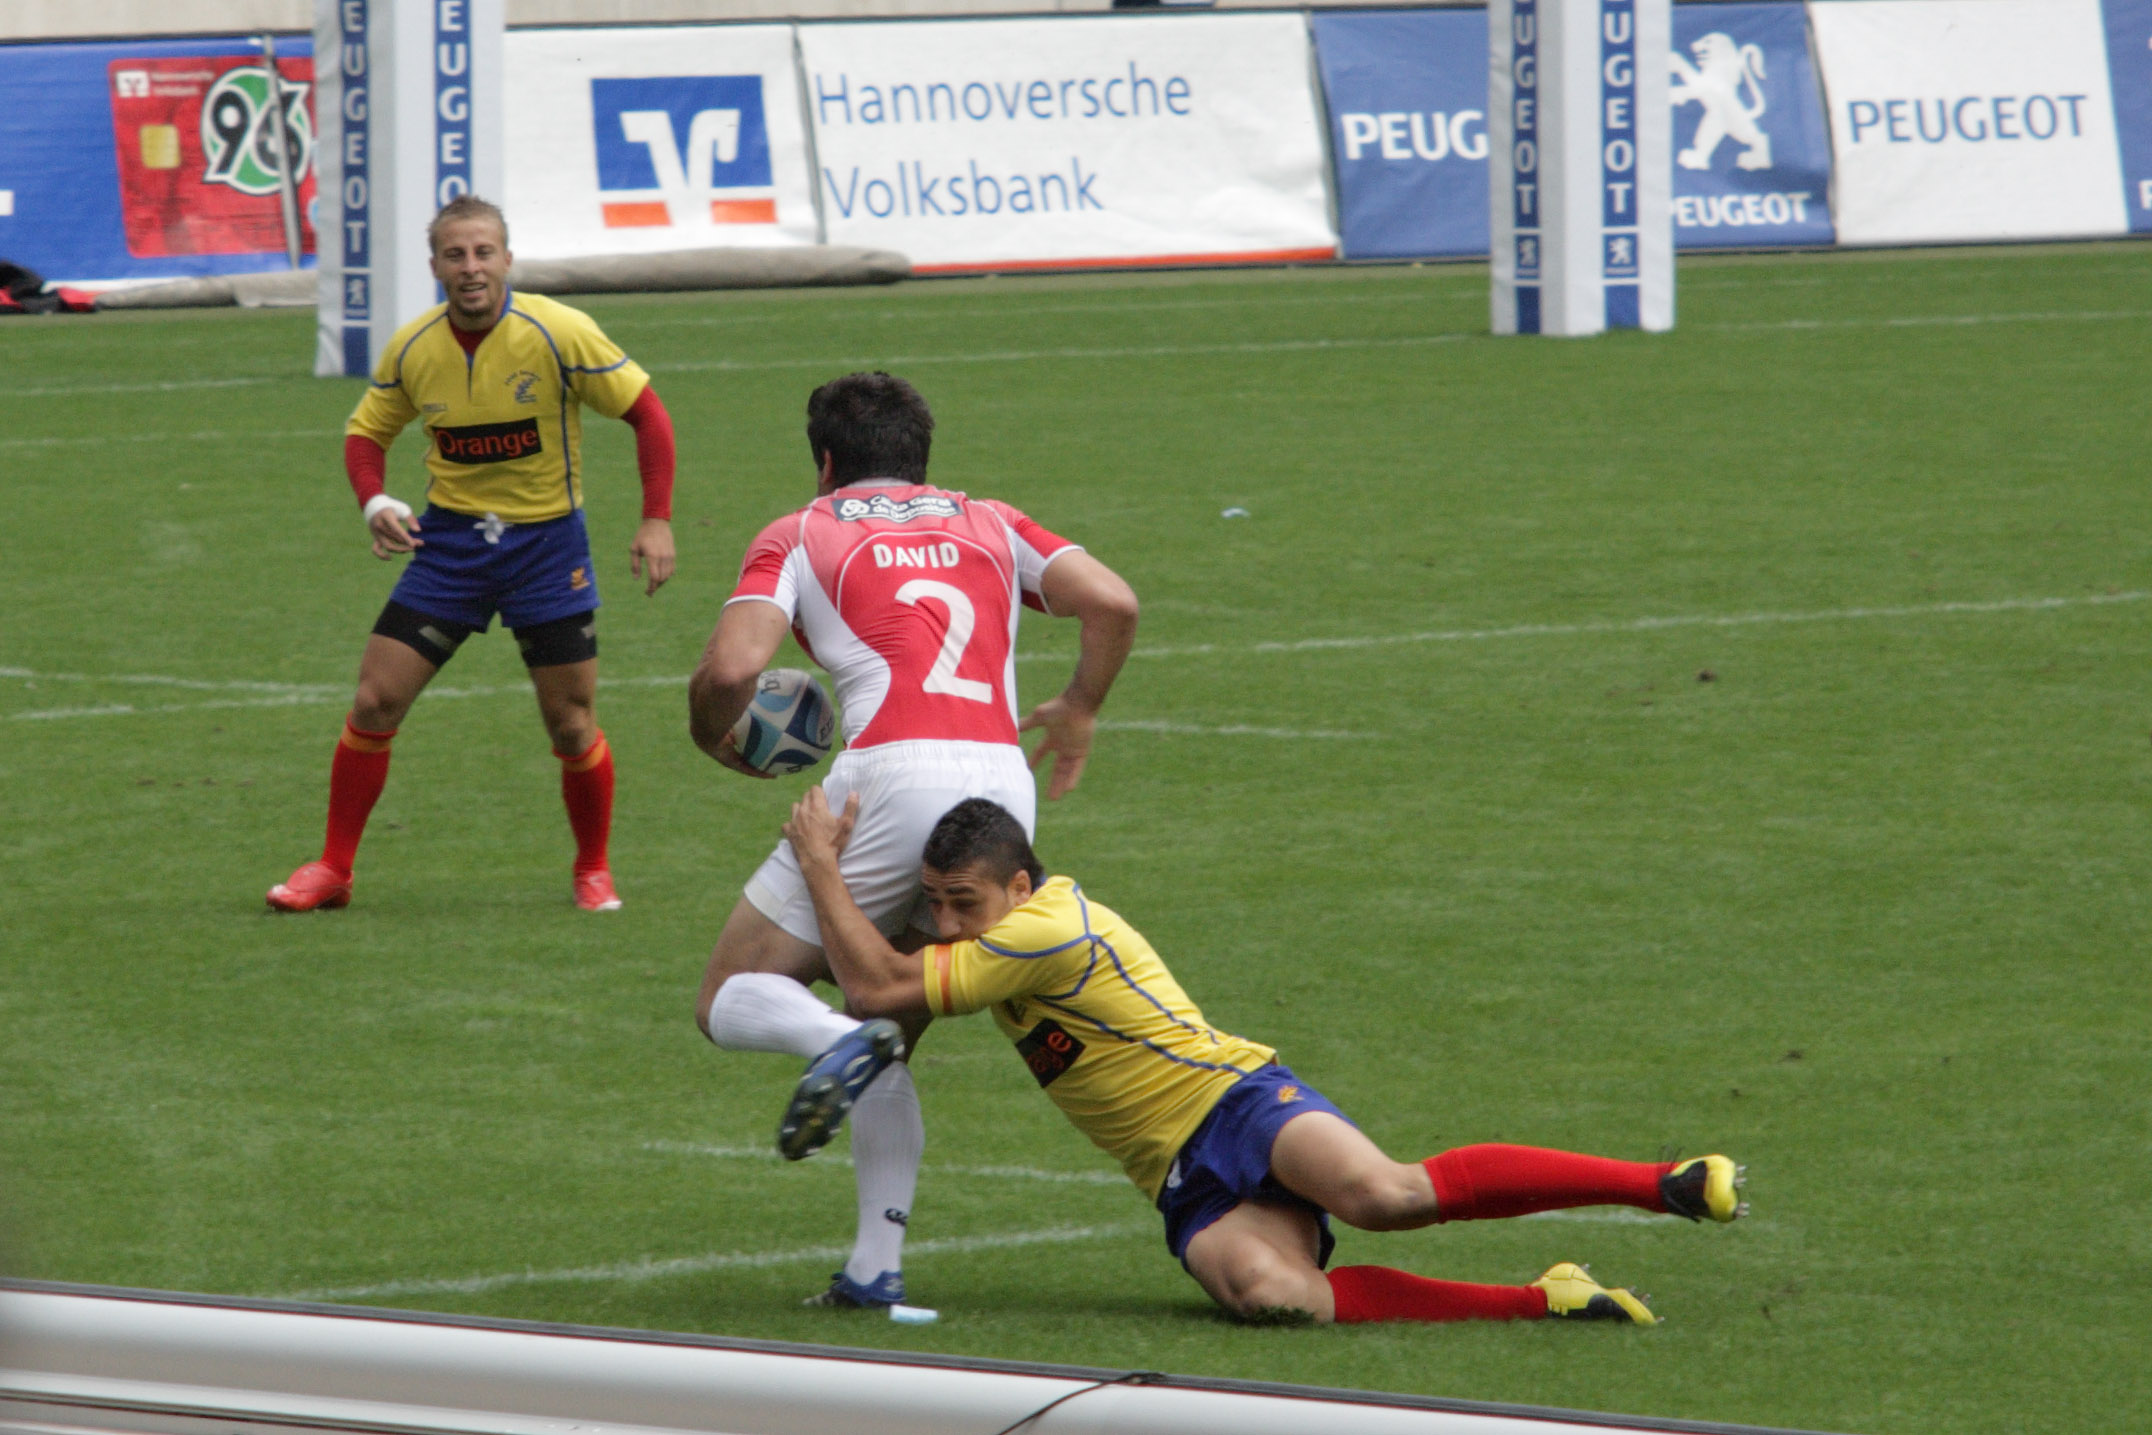 european_sevens_20082c_portugal_vs_romania2c_david_mateus_tackle